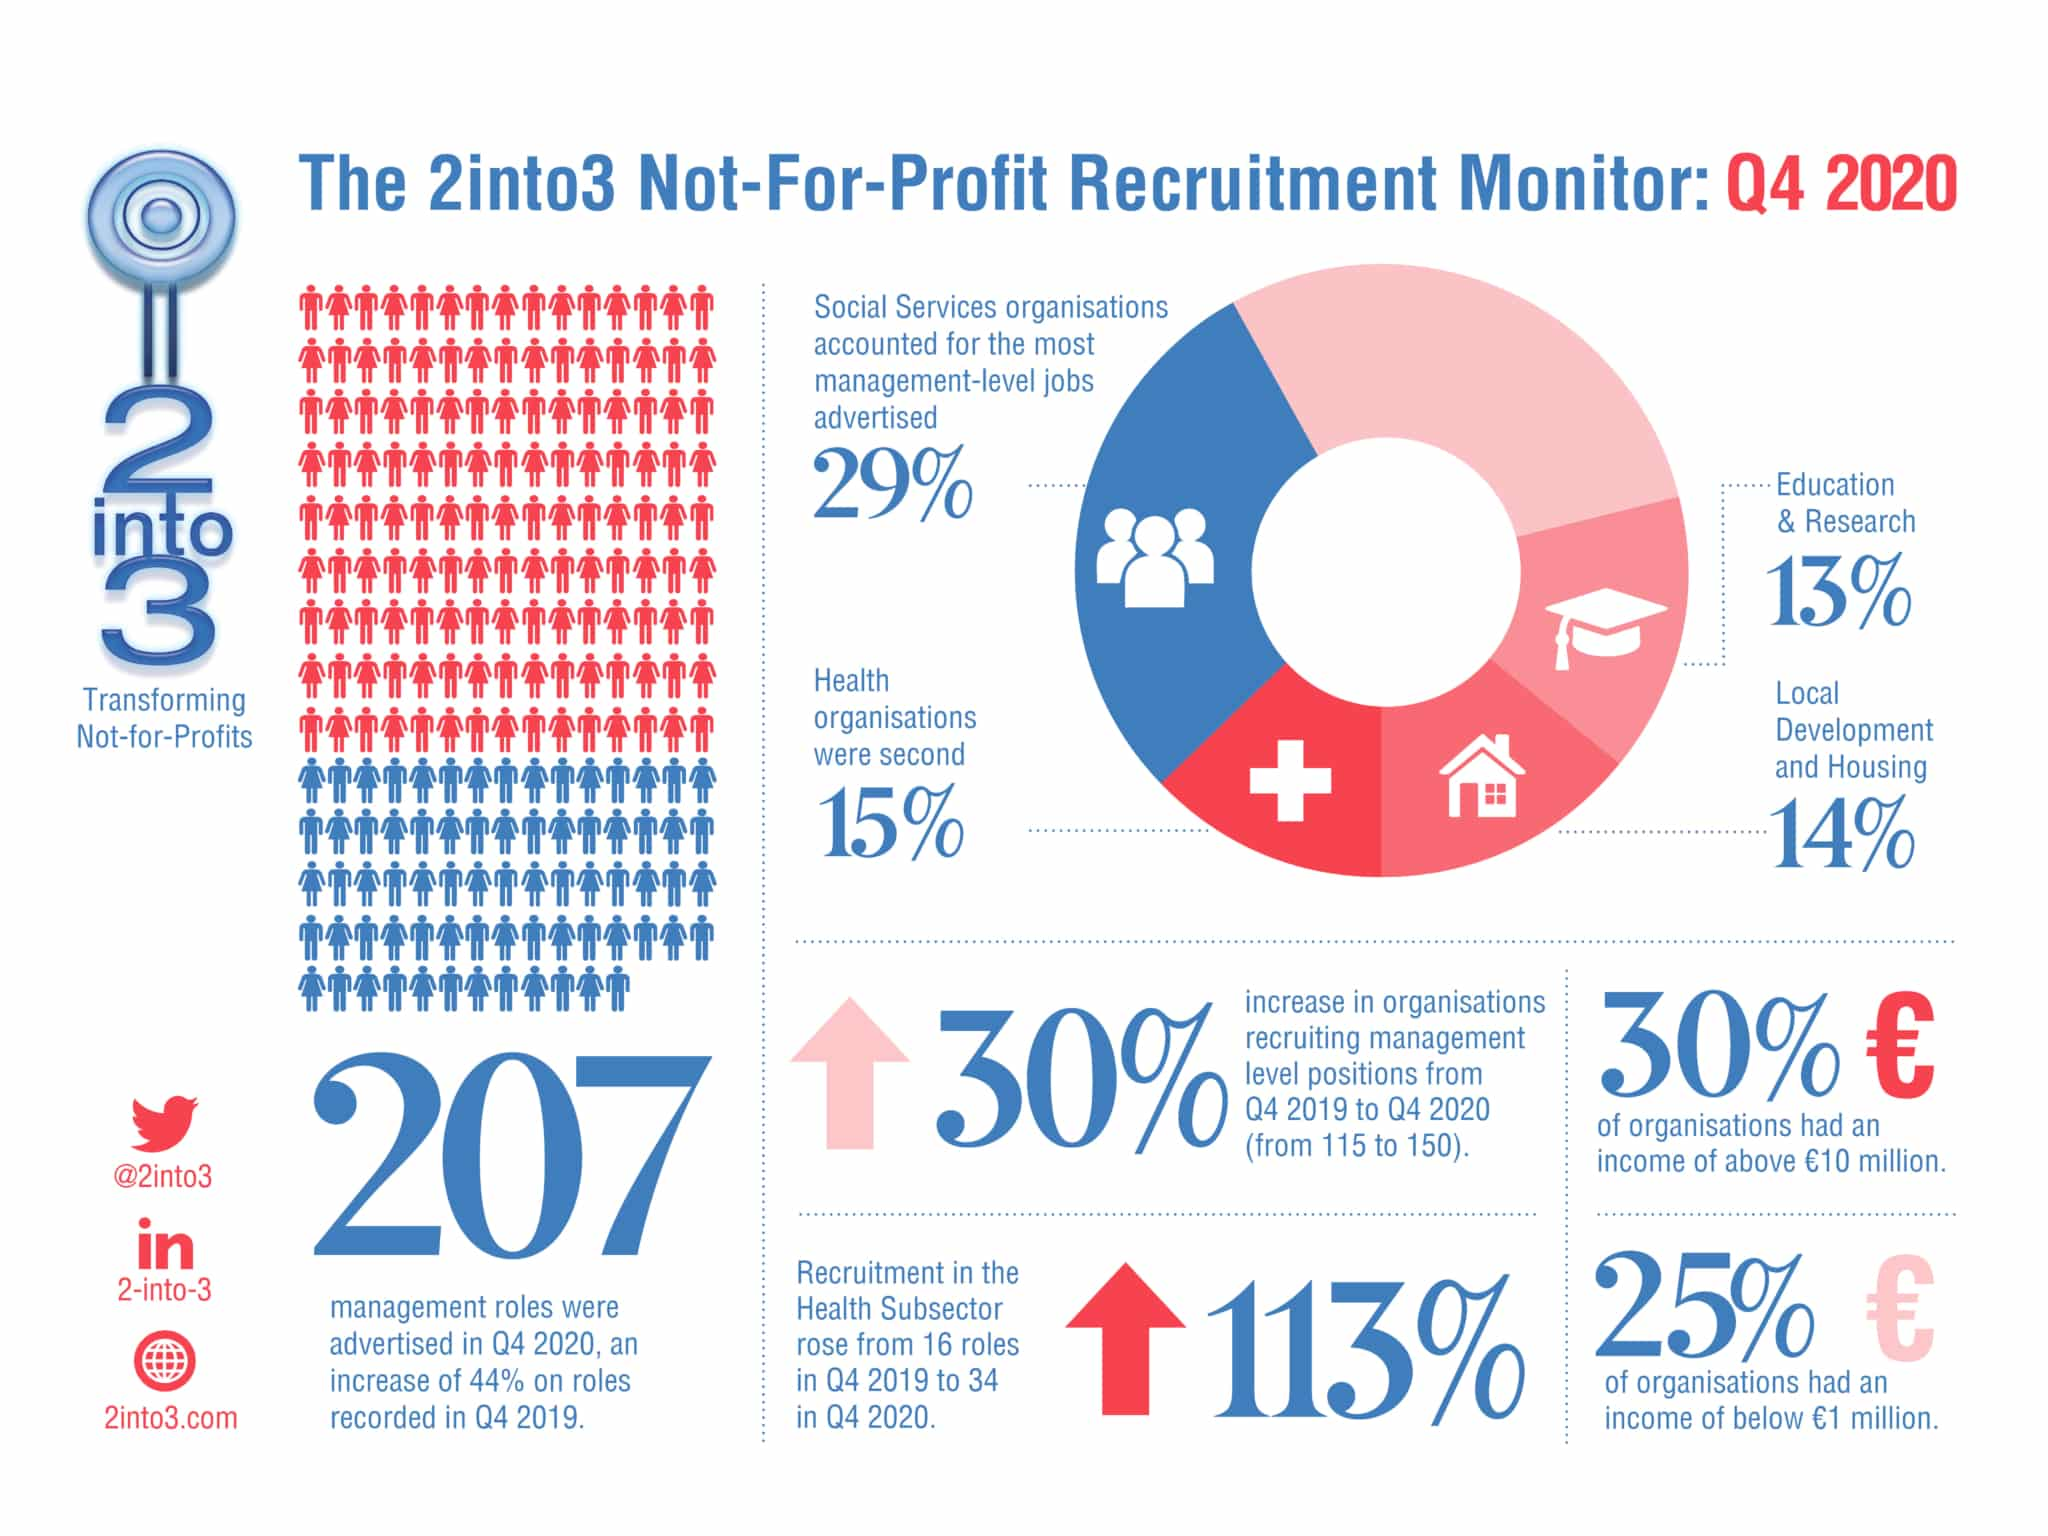 2into3 Quarterly Recruitment Monitor Q4 2020 for Not-for-Profit sector Ireland